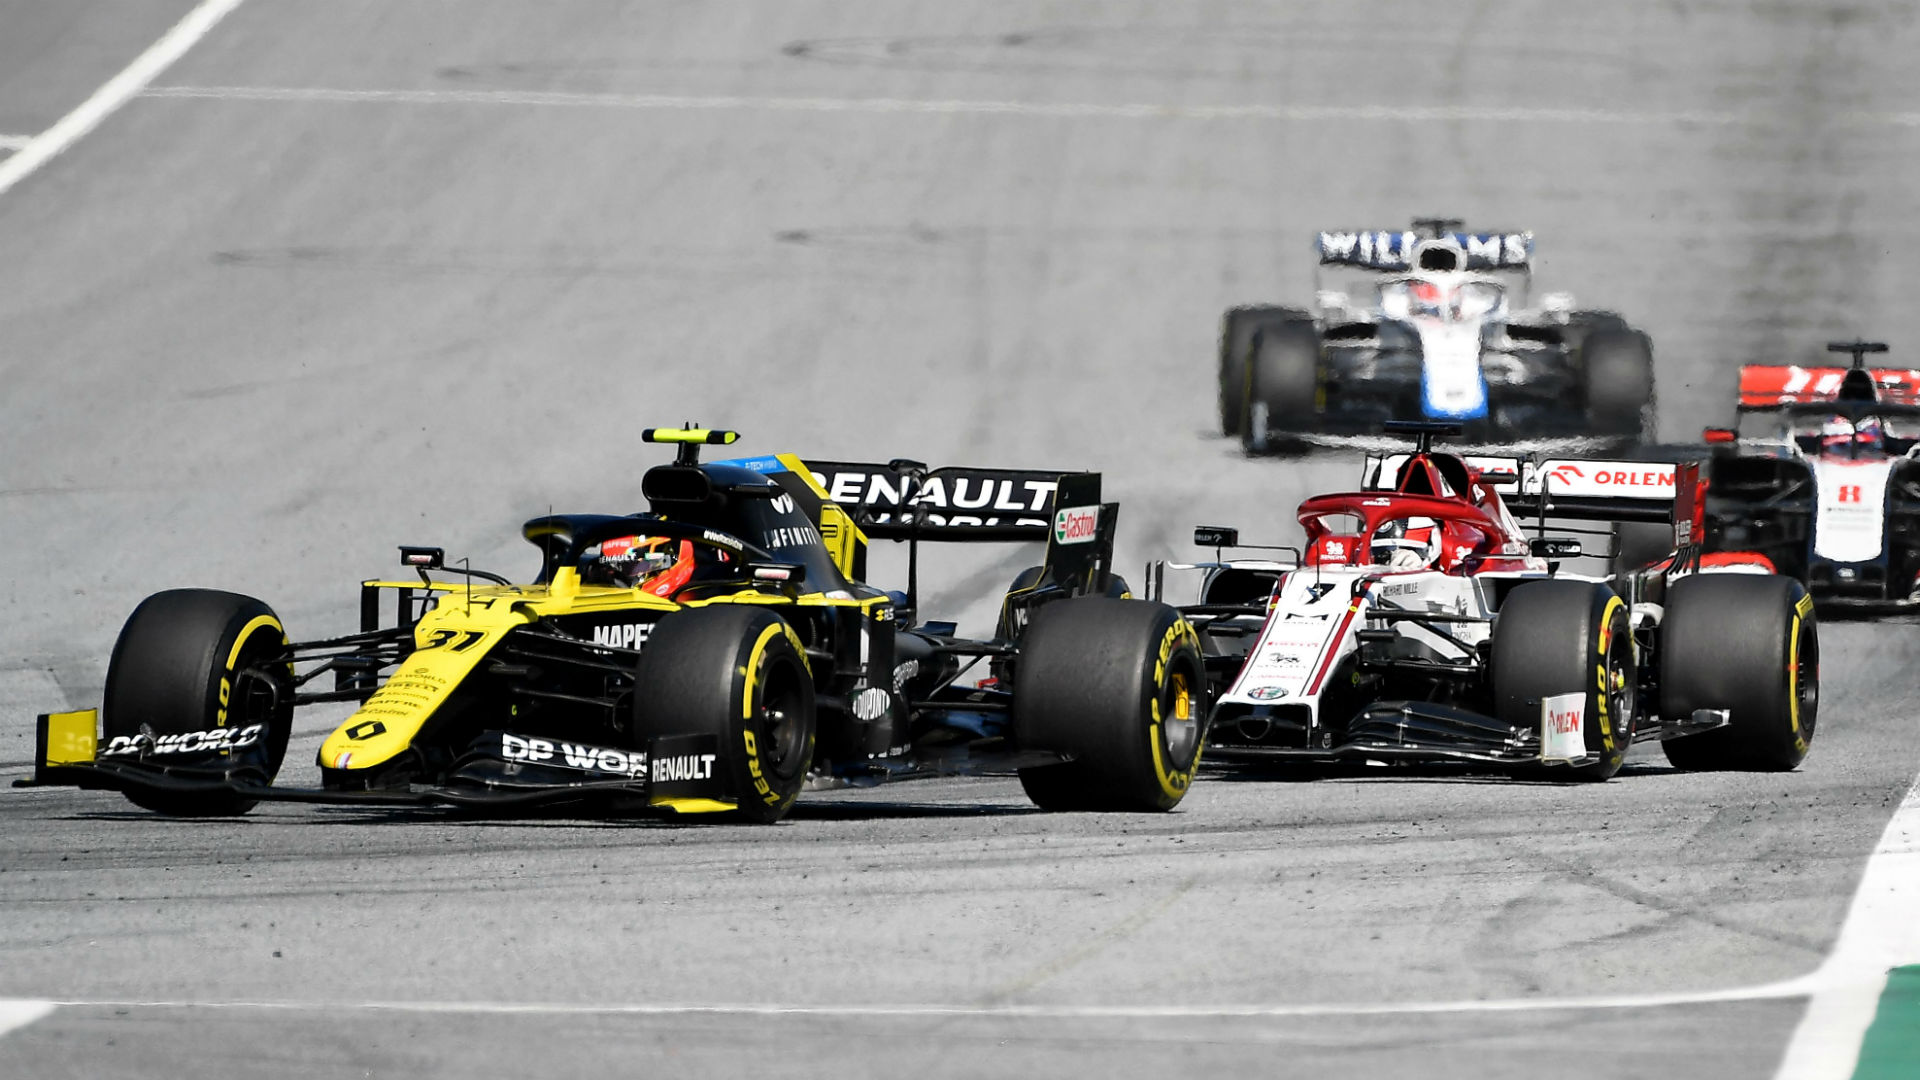 F1 Schedule 2020 Date Start Time Tv Channel For Every Formula 1 Race Sporting News